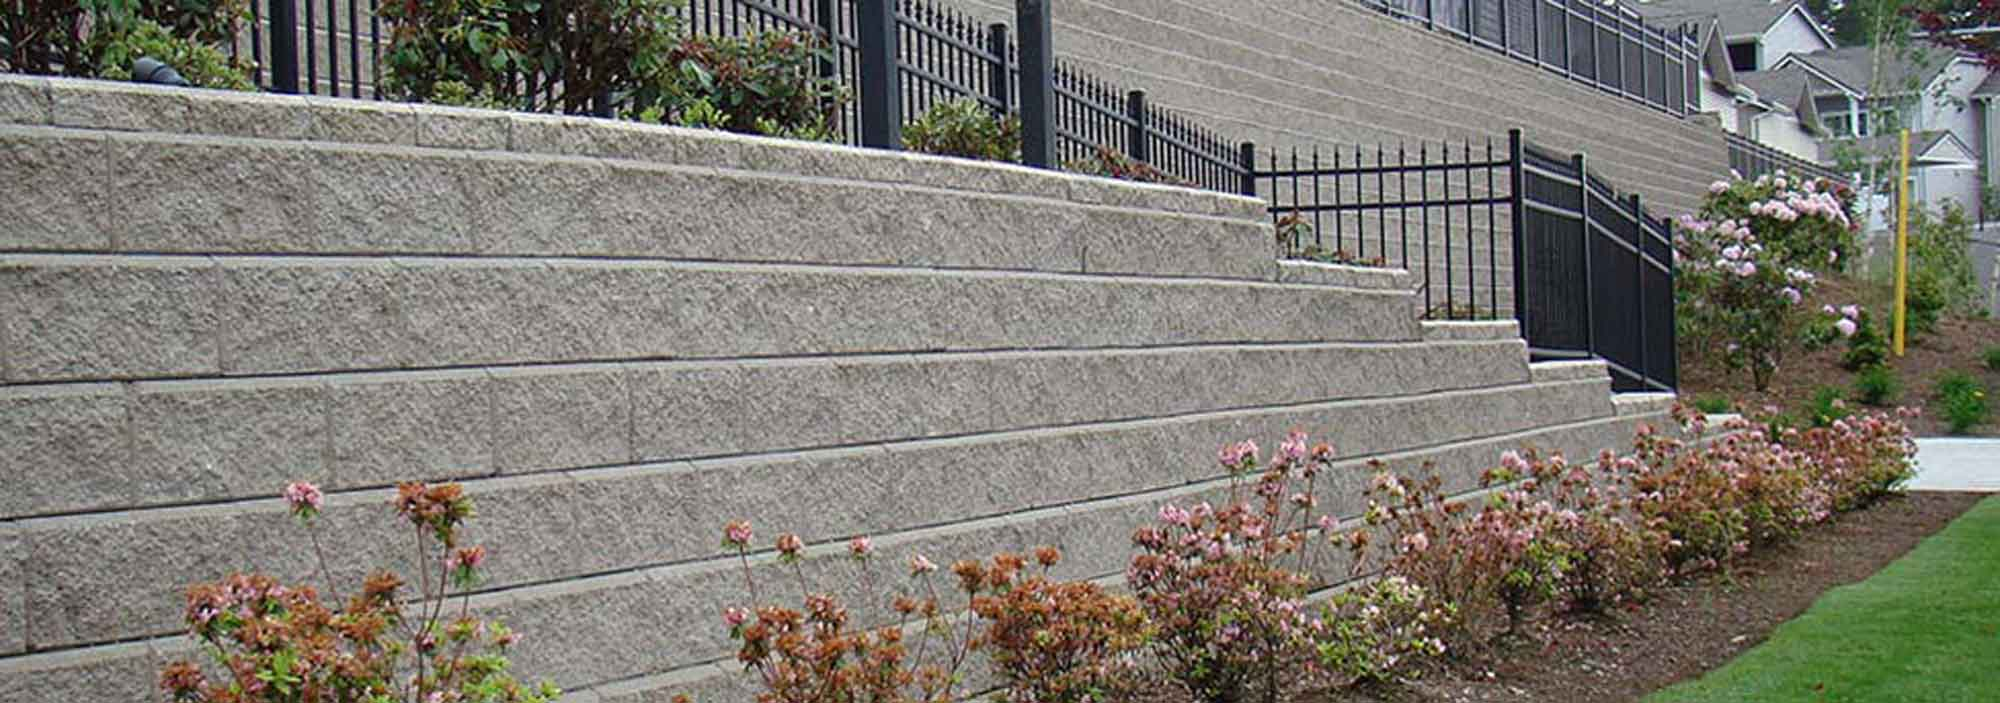 wall design - Block Retaining Wall Design Manual